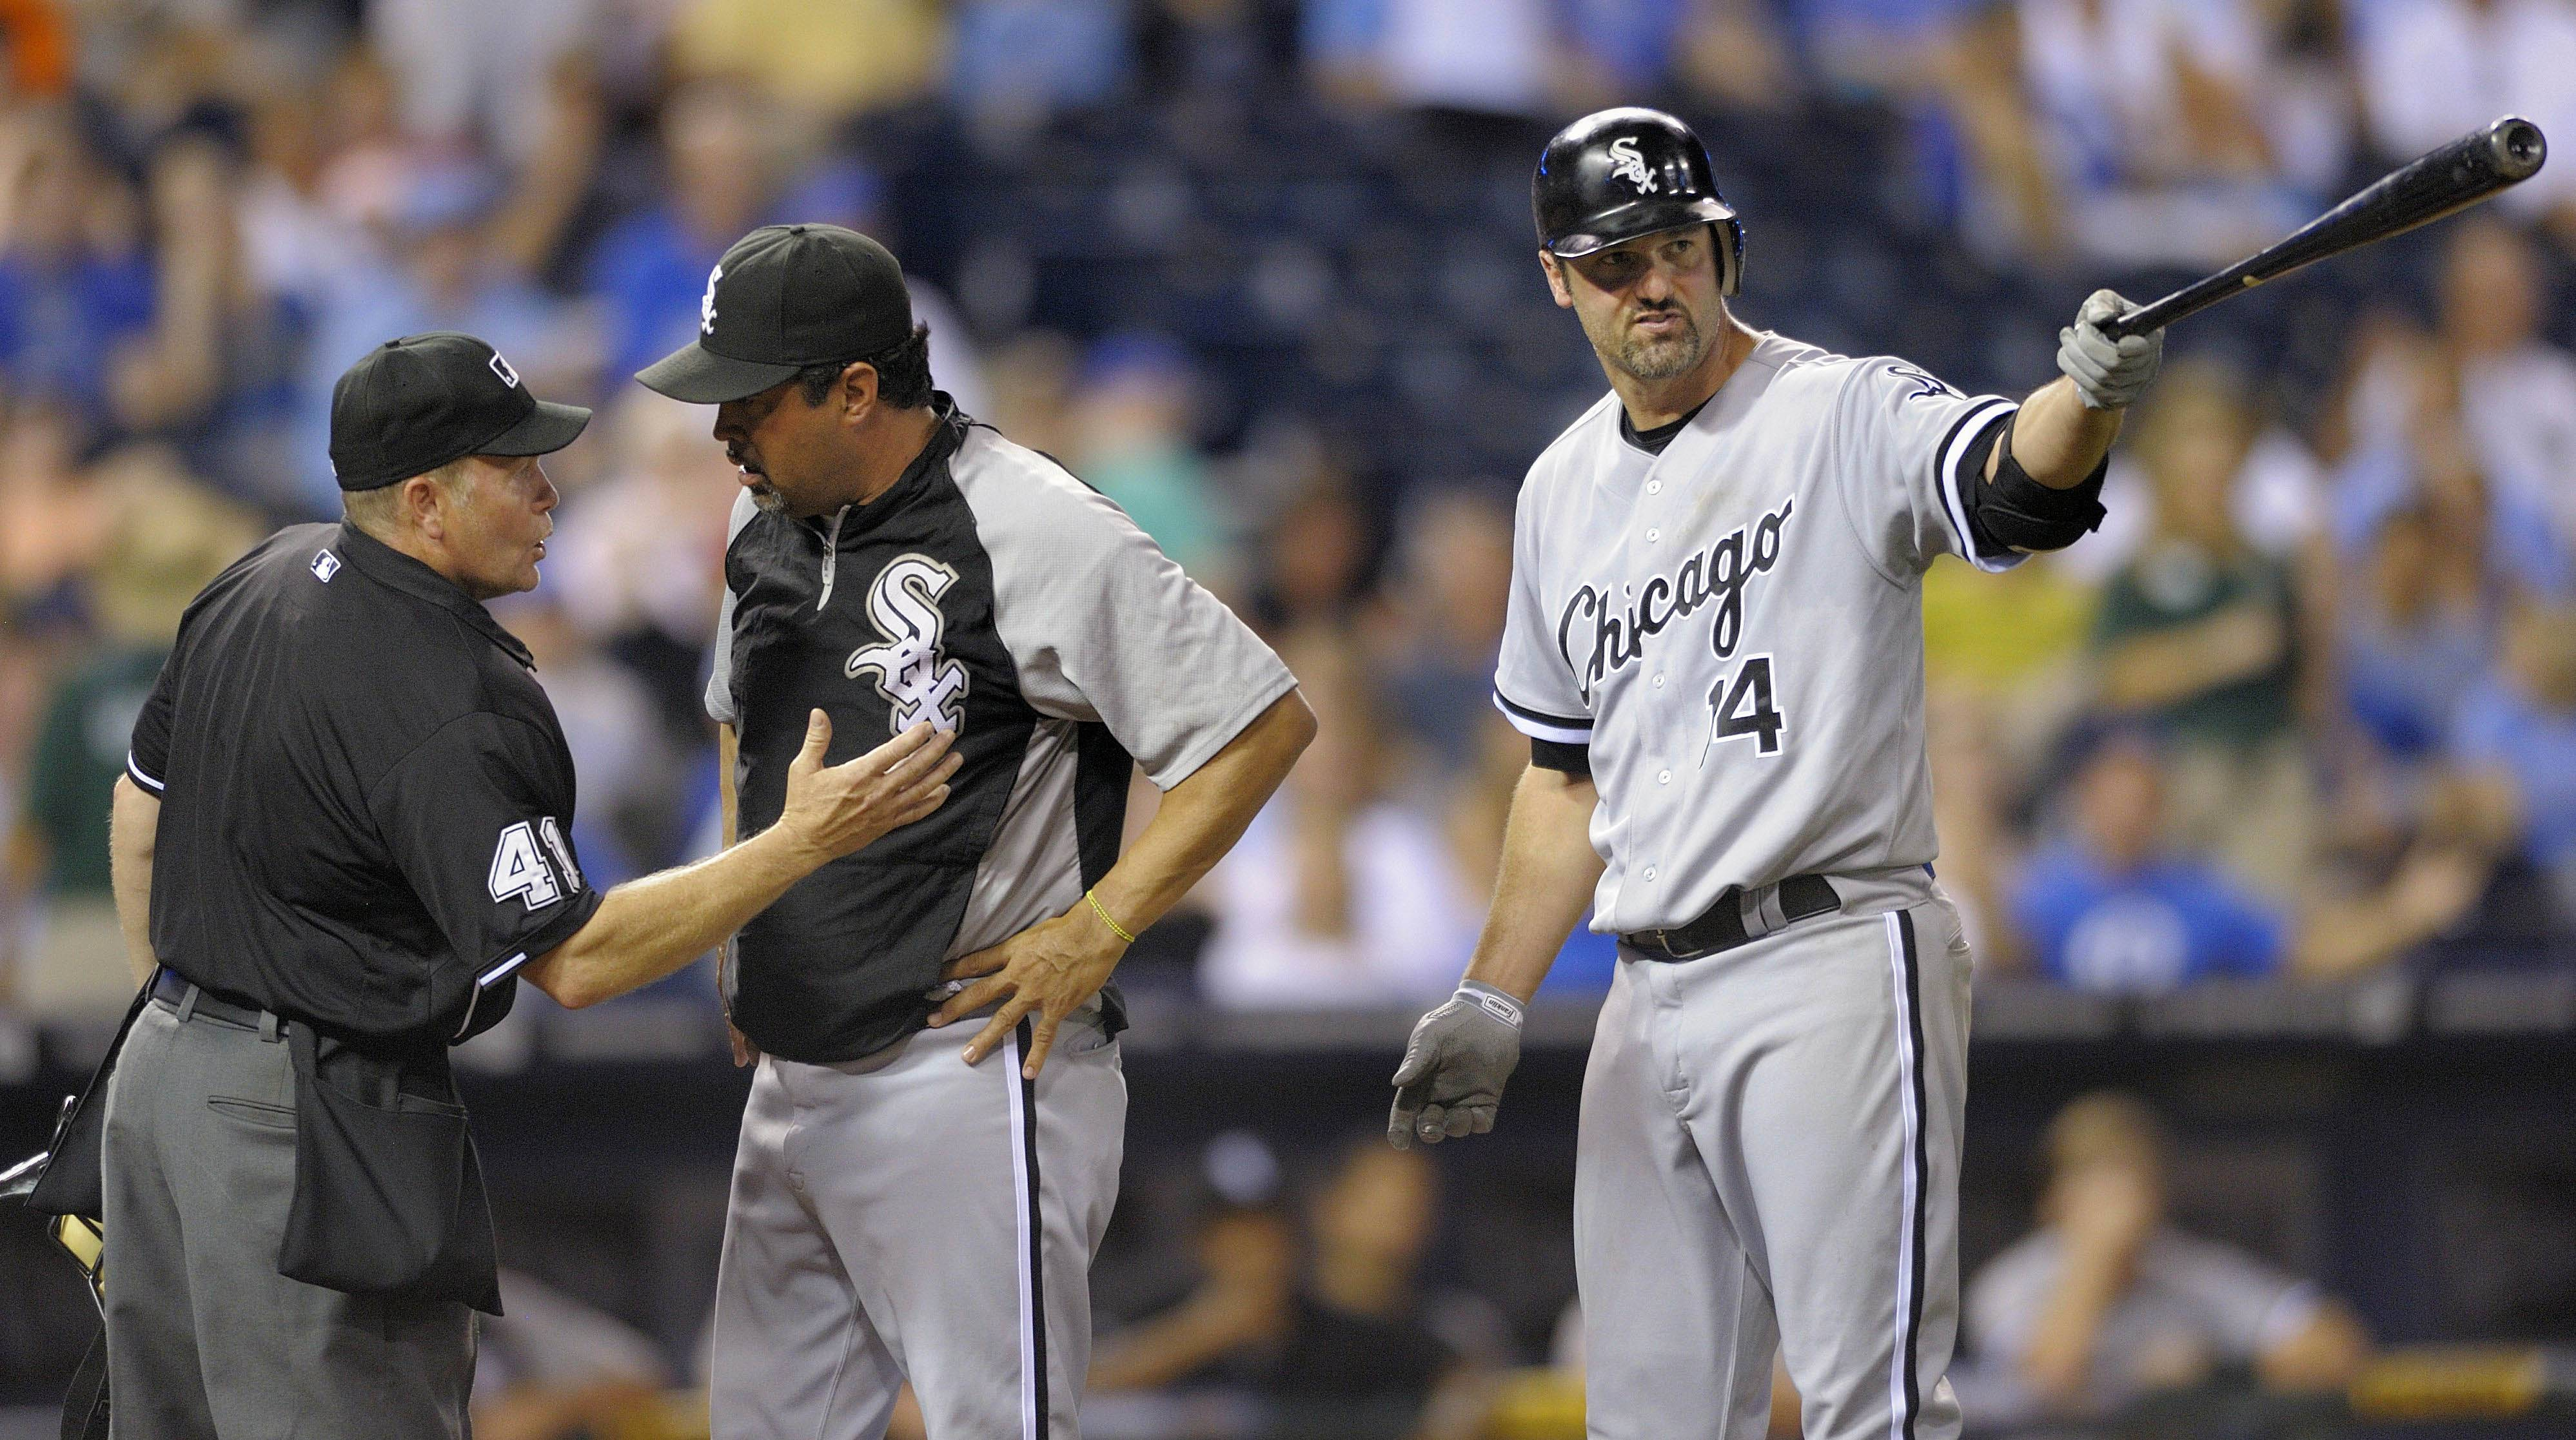 Ozzie Guillen, center, argues a call against Chicago White Sox first baseman Paul Konerko (14) with home plate umpire Jerry Meals, left, in the ninth inning of their baseball game against the Kansas City Royals in Kansas City, Mo., Wednesday, July 20, 2011.